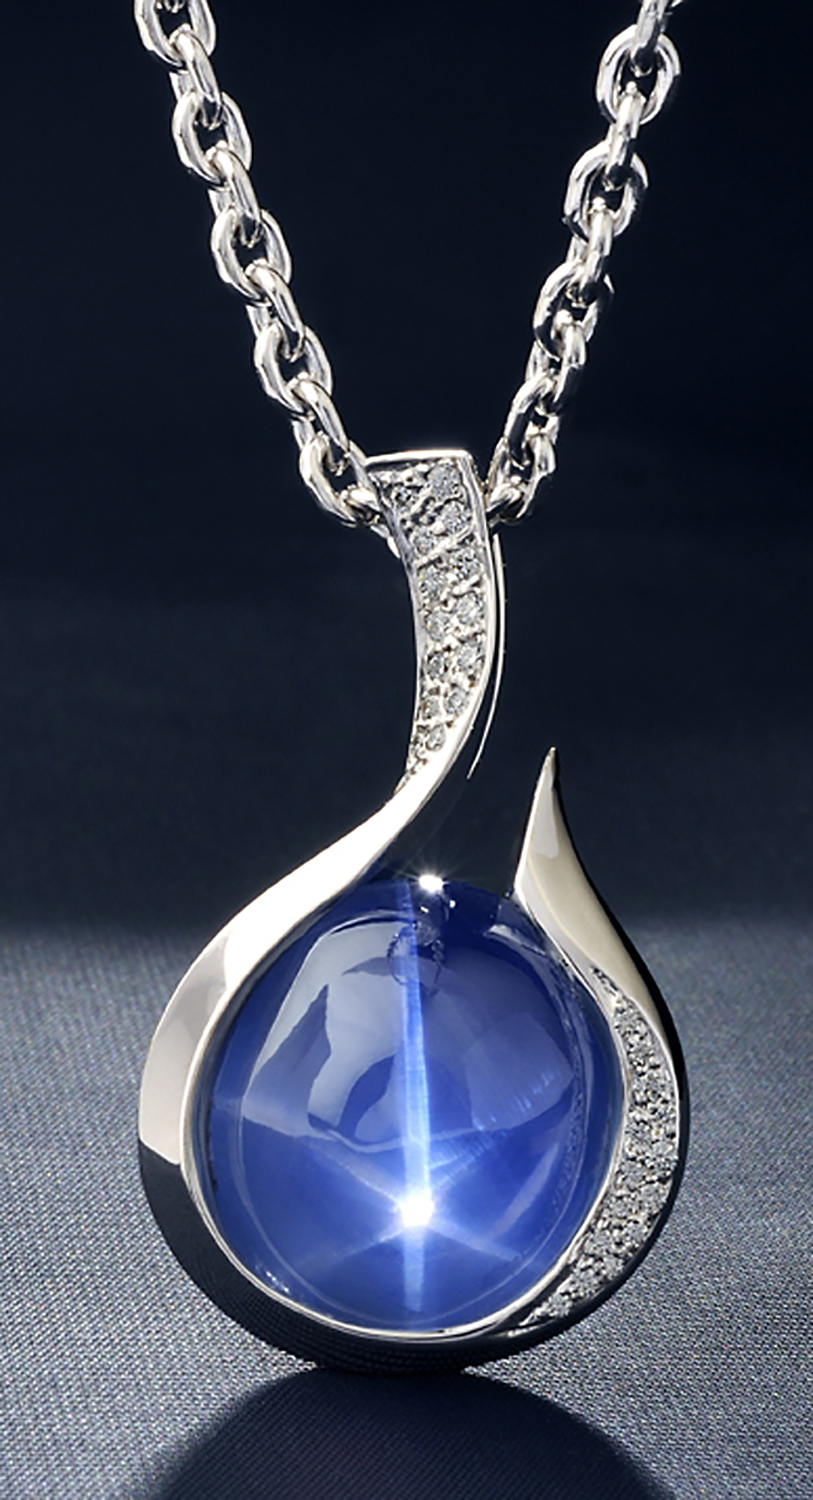 Large star sapphire with star in middle in silver and diamond pendant hanging from silver chain